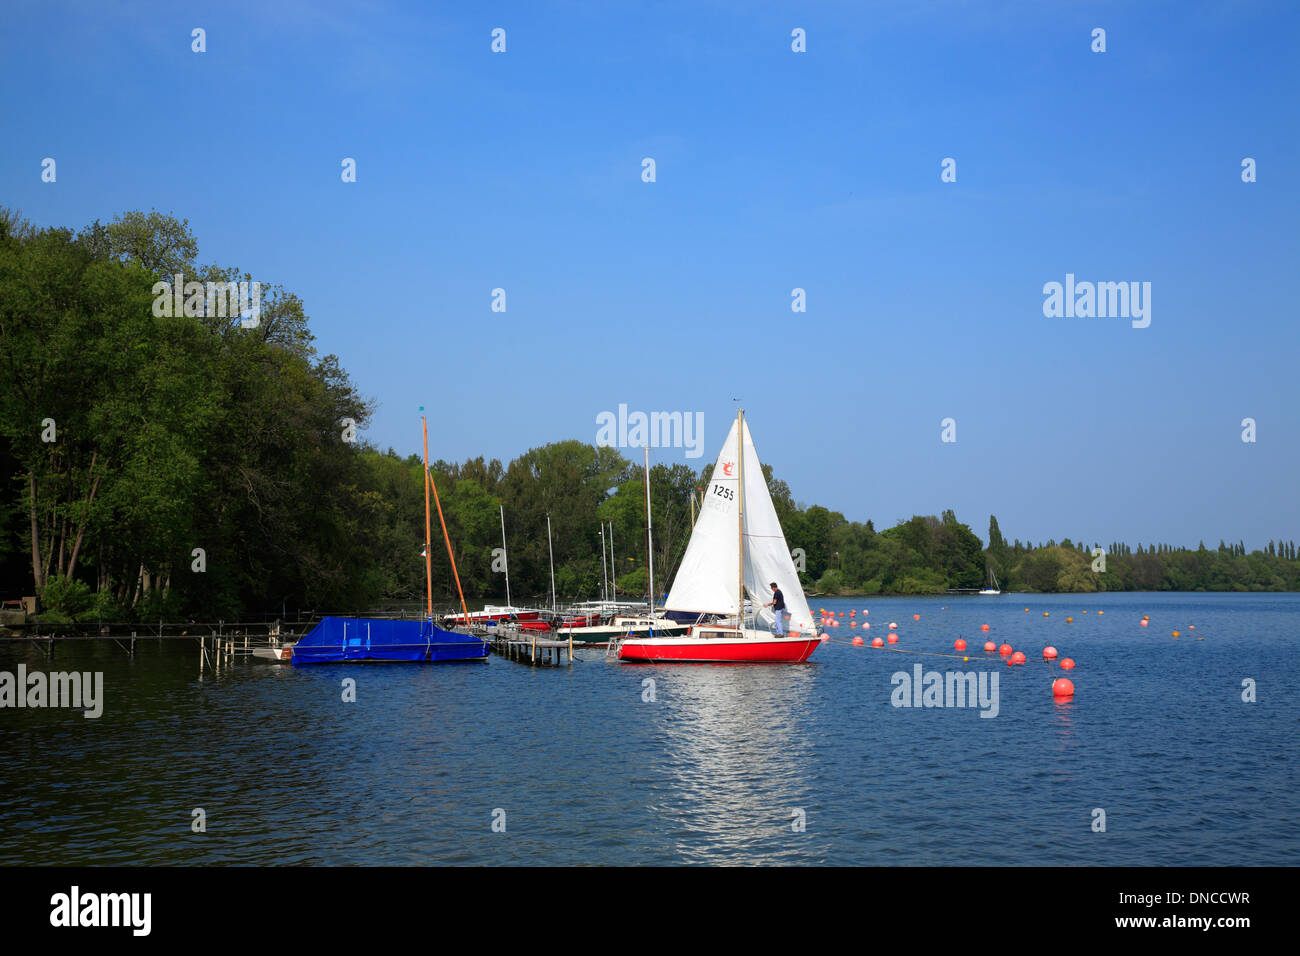 Ascheberg   at Lake Ploen (Ploener See), Holsteinische Schweiz, Schleswig-Holstein, Germany, Europe - Stock Image